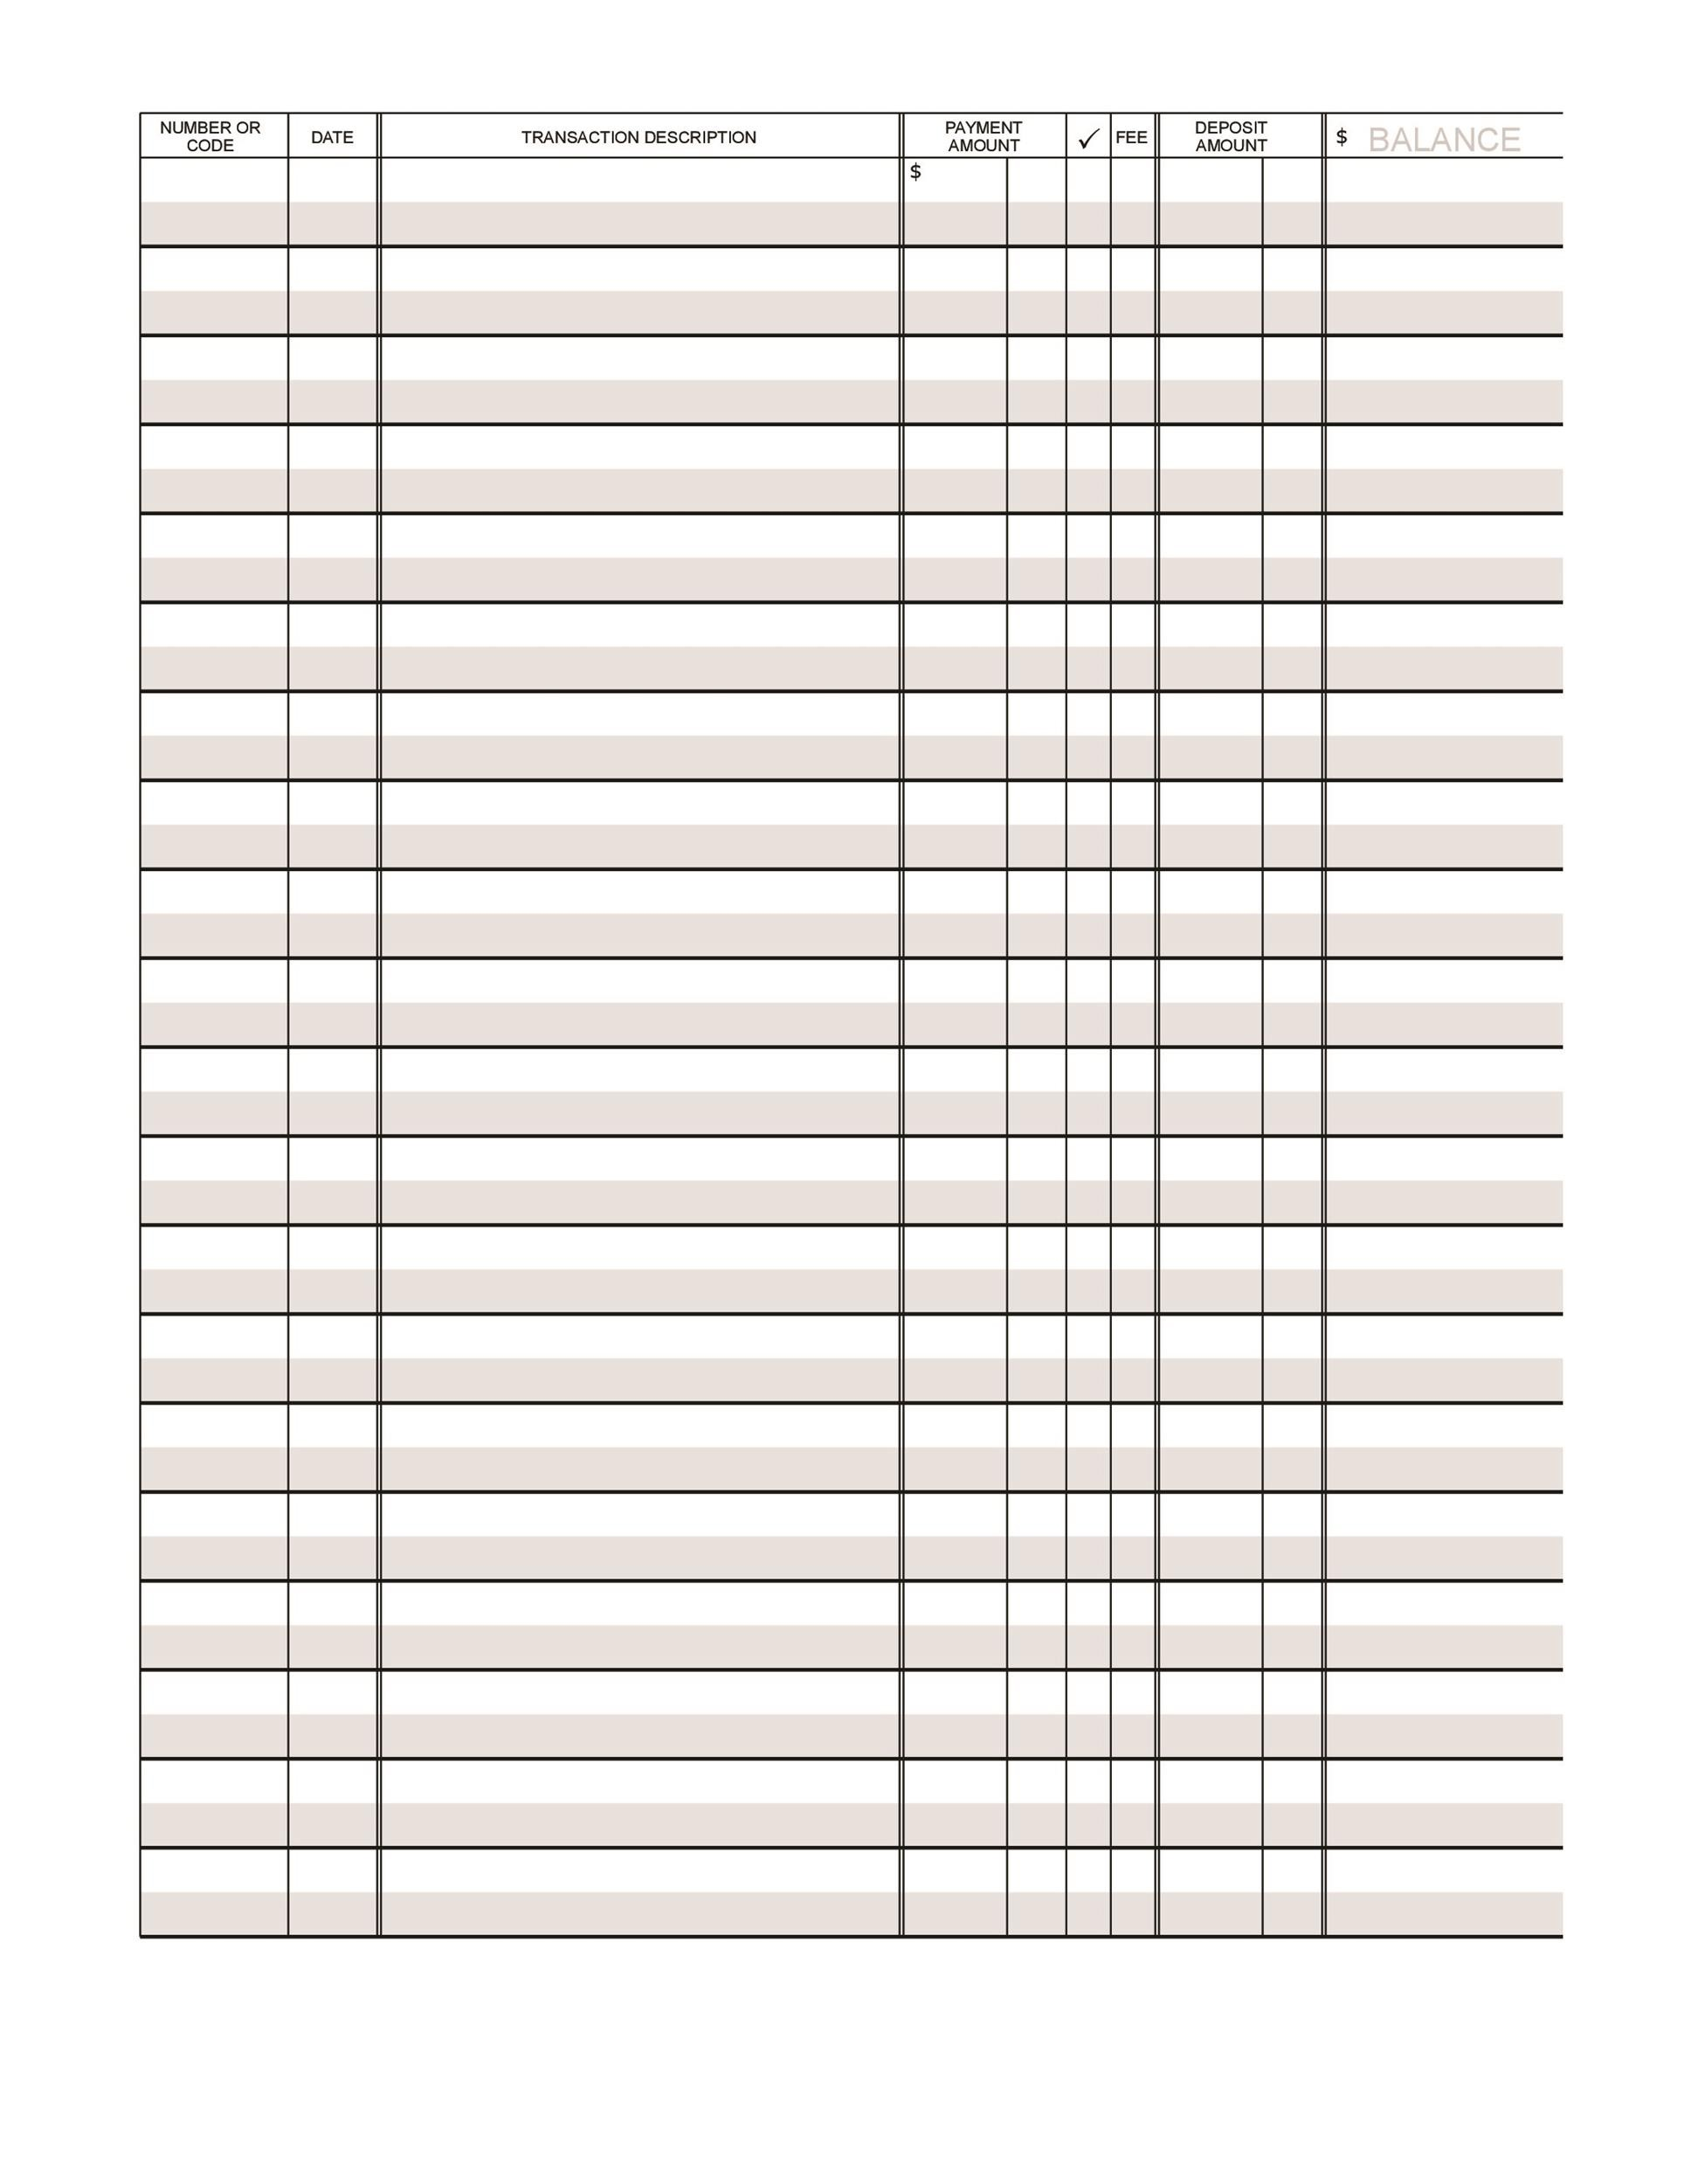 37 Checkbook Register Templates 100 Free Printable Template Lab – Check Register Template